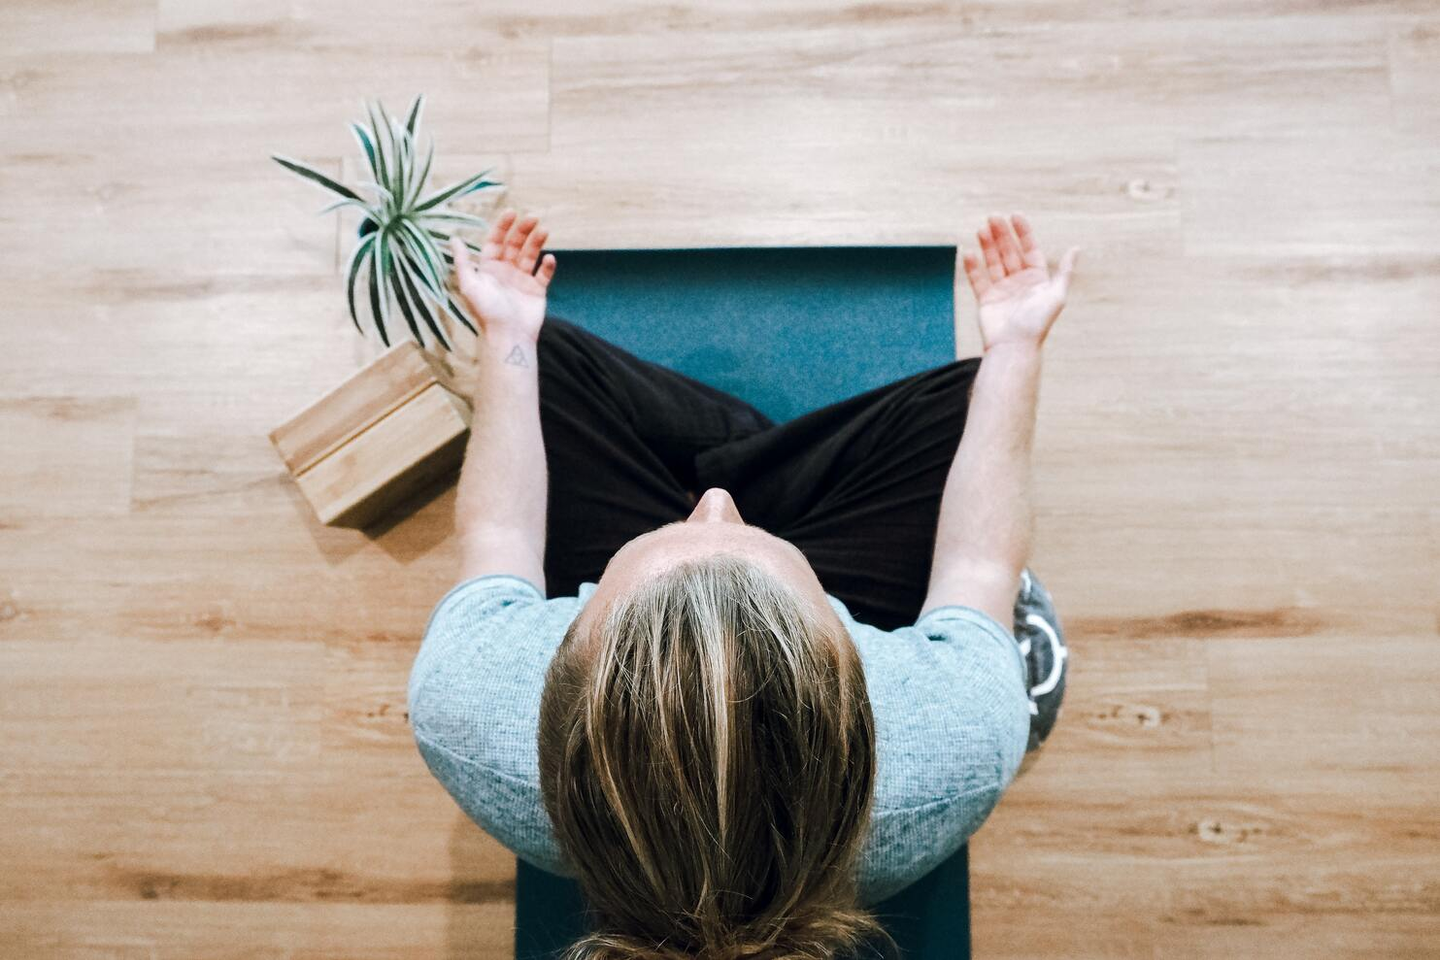 Image of freelancer practicing mindfulness to boost productivity